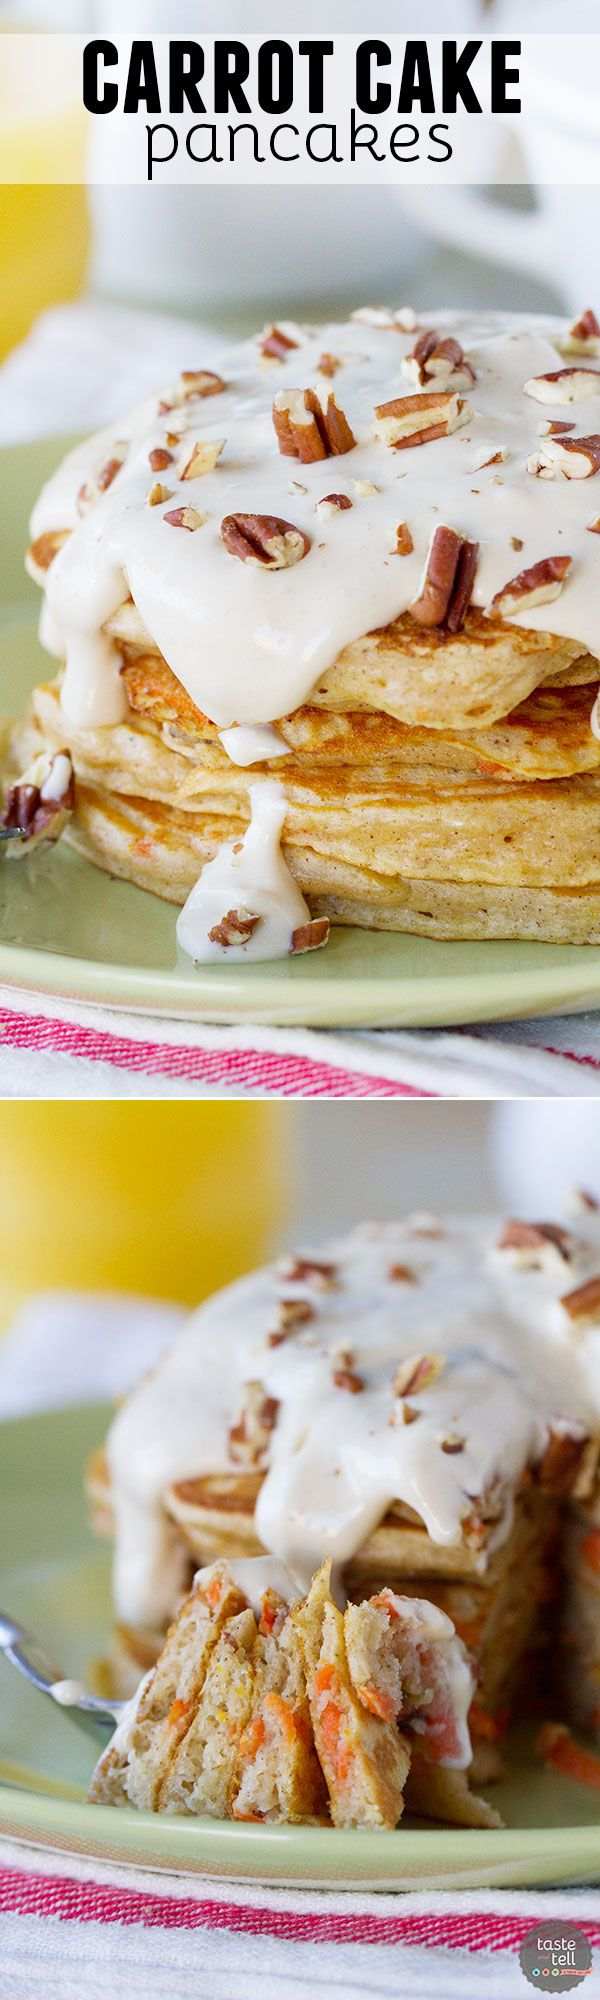 When dessert turns into breakfast, you know I'll be a fan! These Carrot Cake Pancakes are full of all of the best carrot cake flavors and topped with a maple cream cheese syrup.: